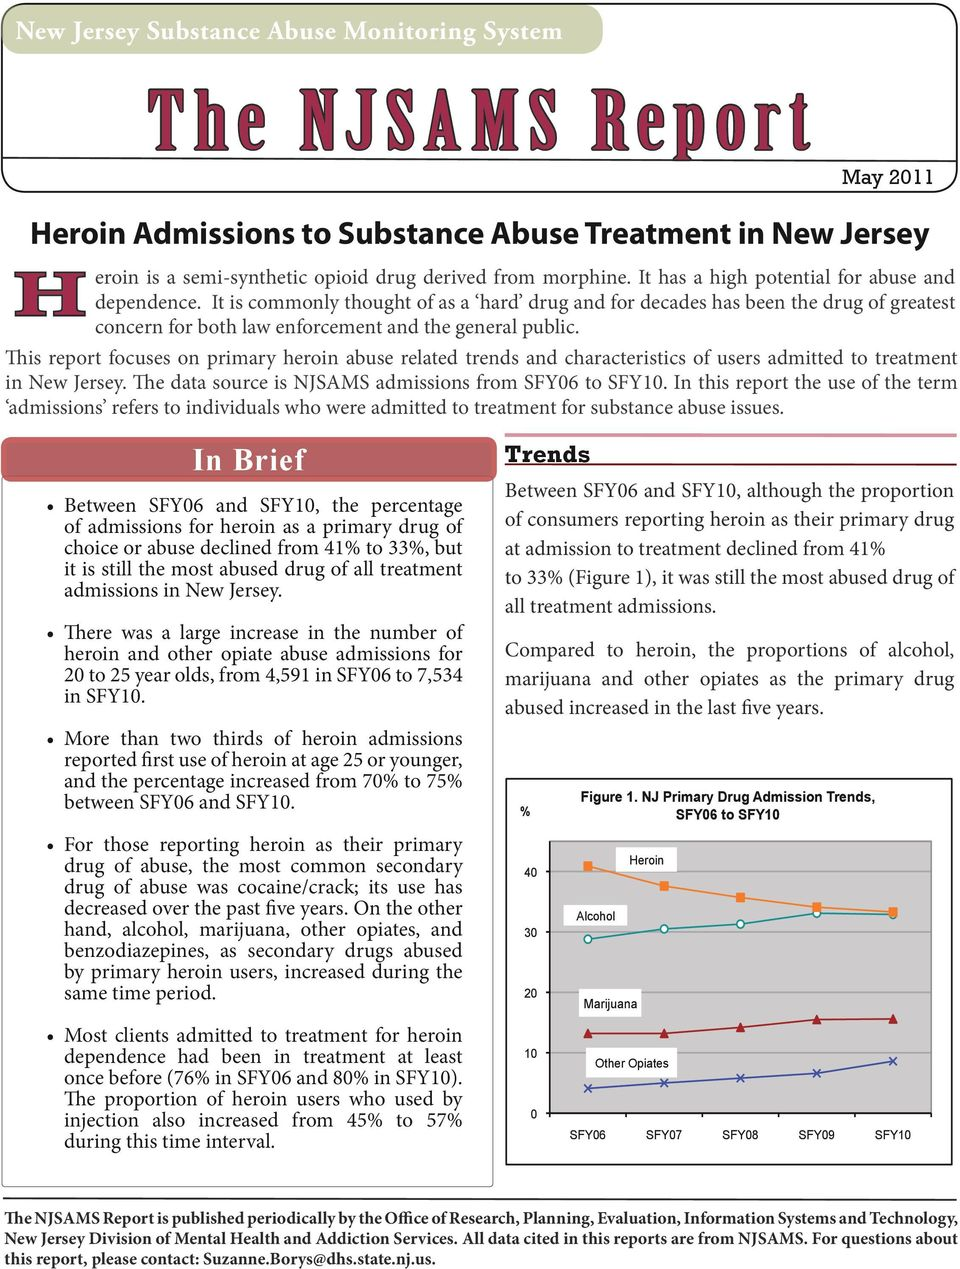 This report focuses on primary heroin abuse related trends and characteristics of users admitted to treatment in New Jersey. The data source is NJSAMS admissions from SFY06 to SFY10.